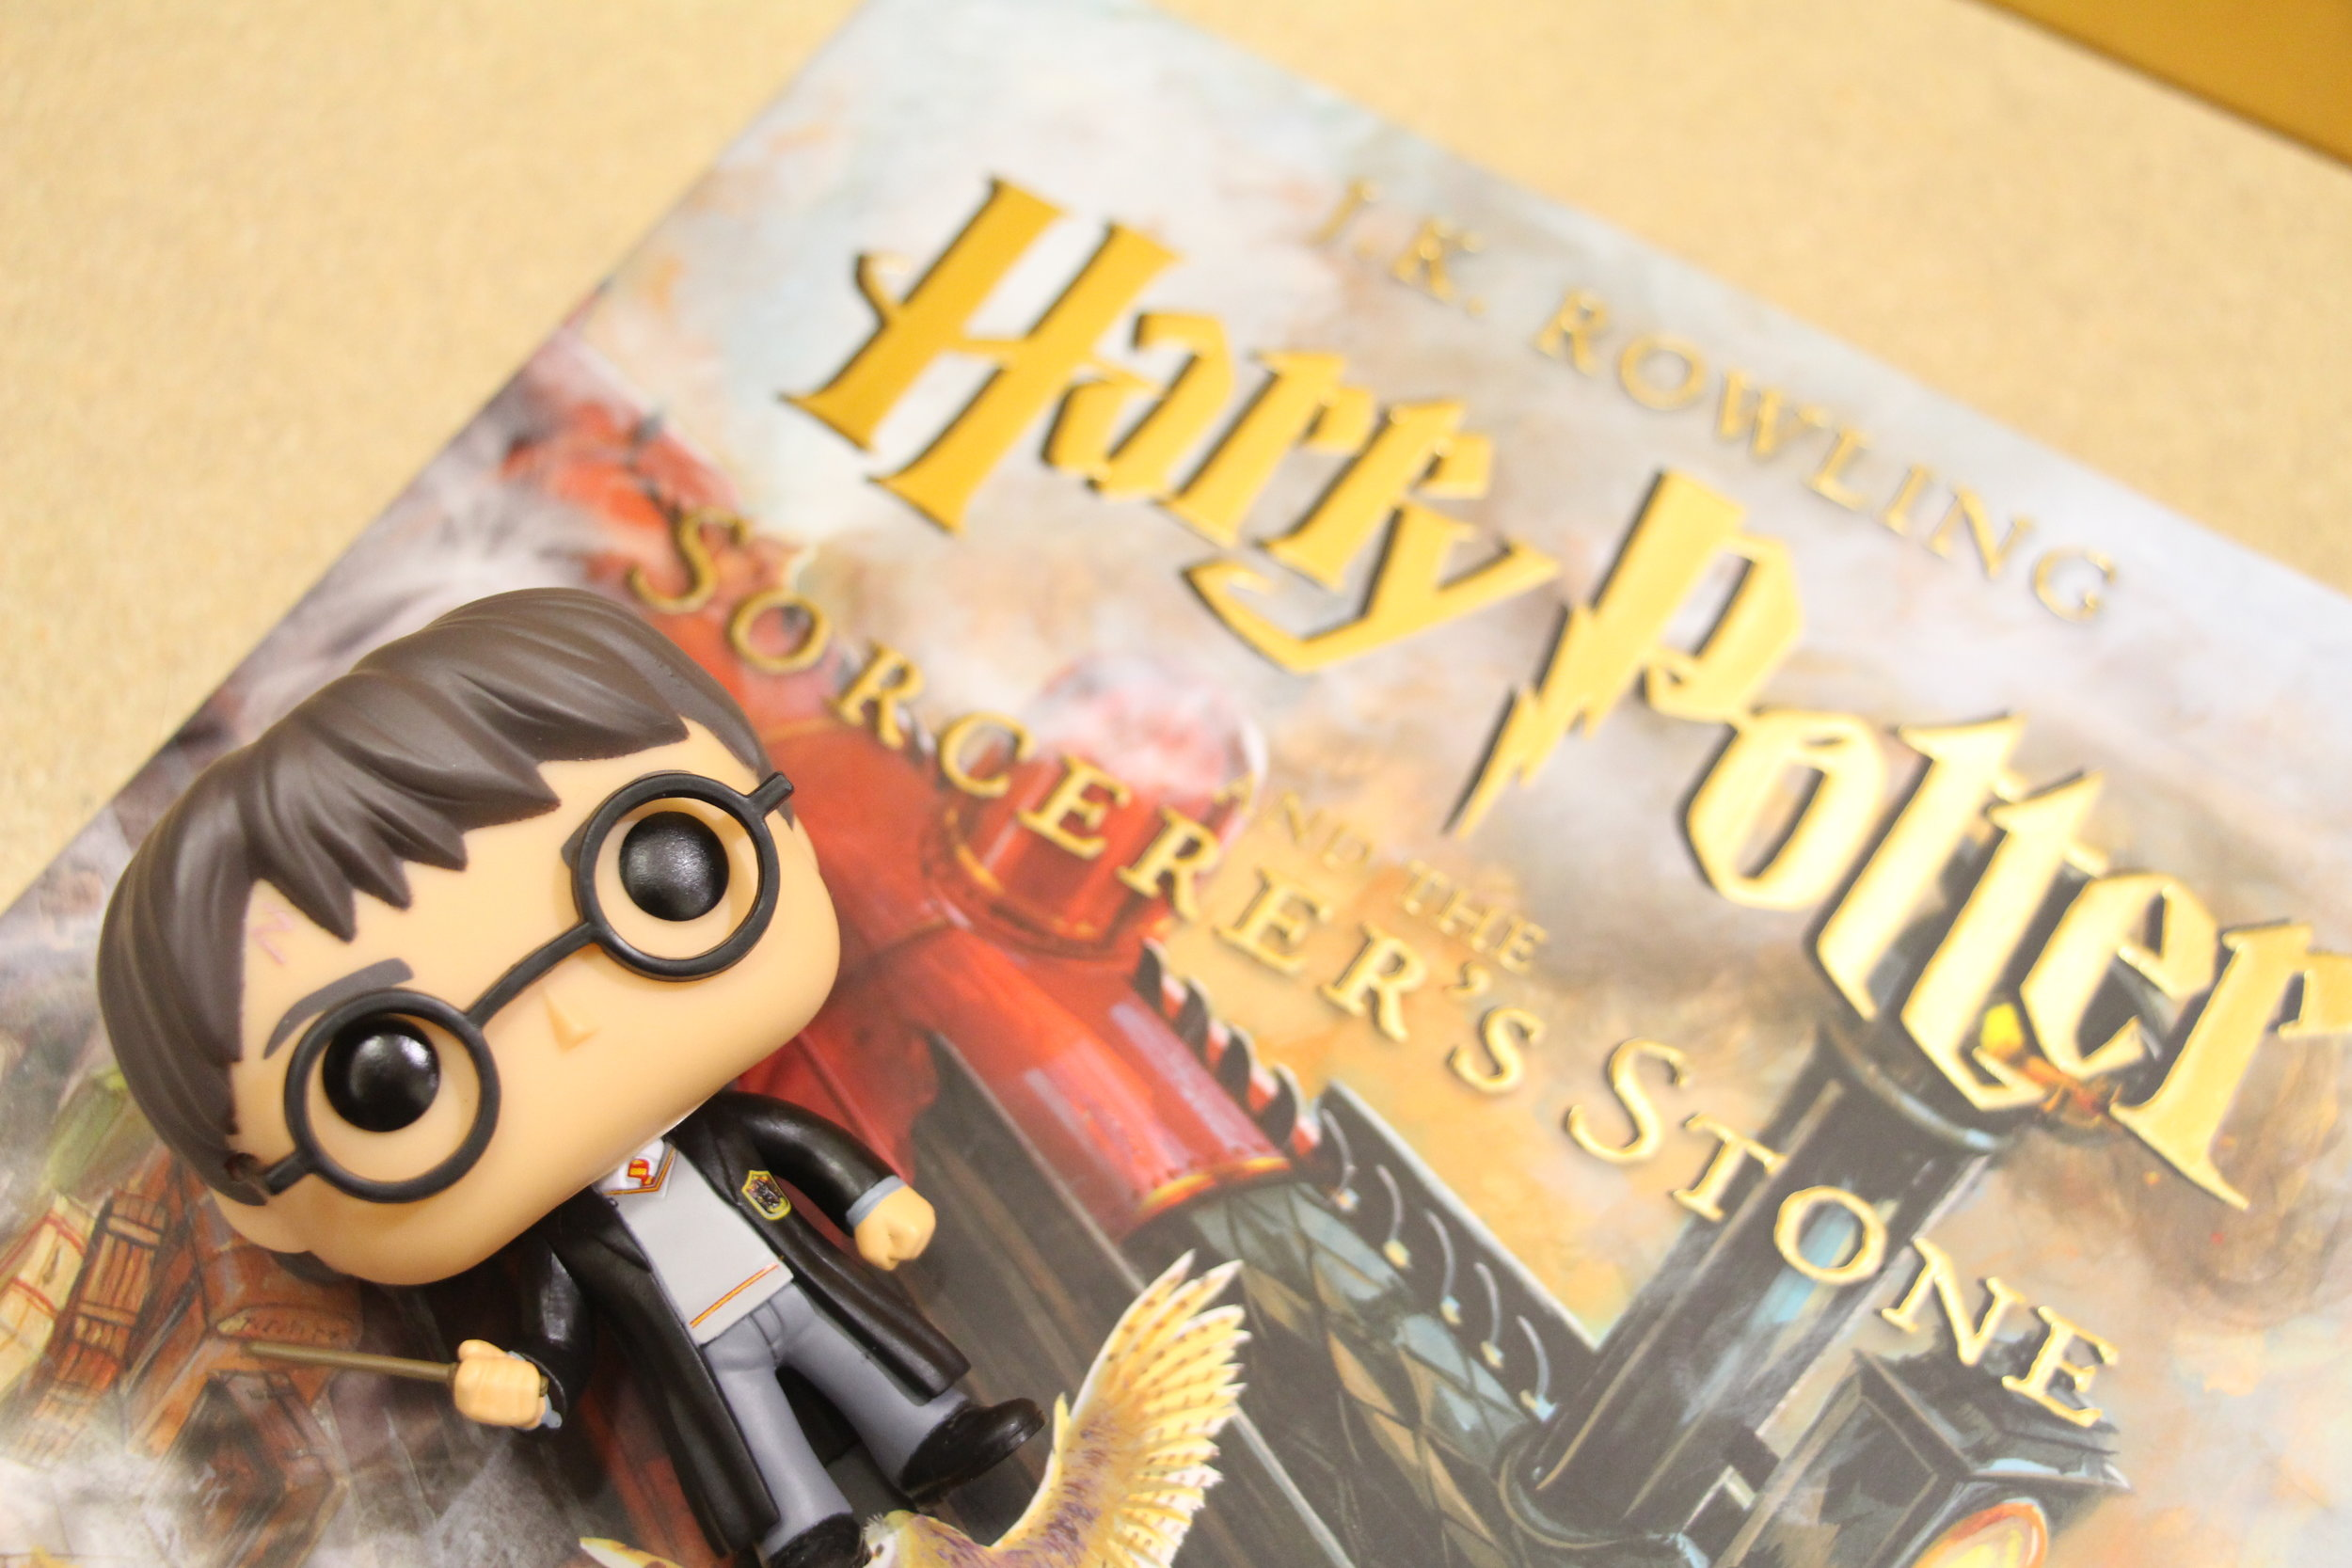 """The """"Harry Potter"""" series has been republished multiple times with new cover art, including new illustrated editions with full-page artwork by illustrator Jim Kay. Photo by Ren Friemann"""